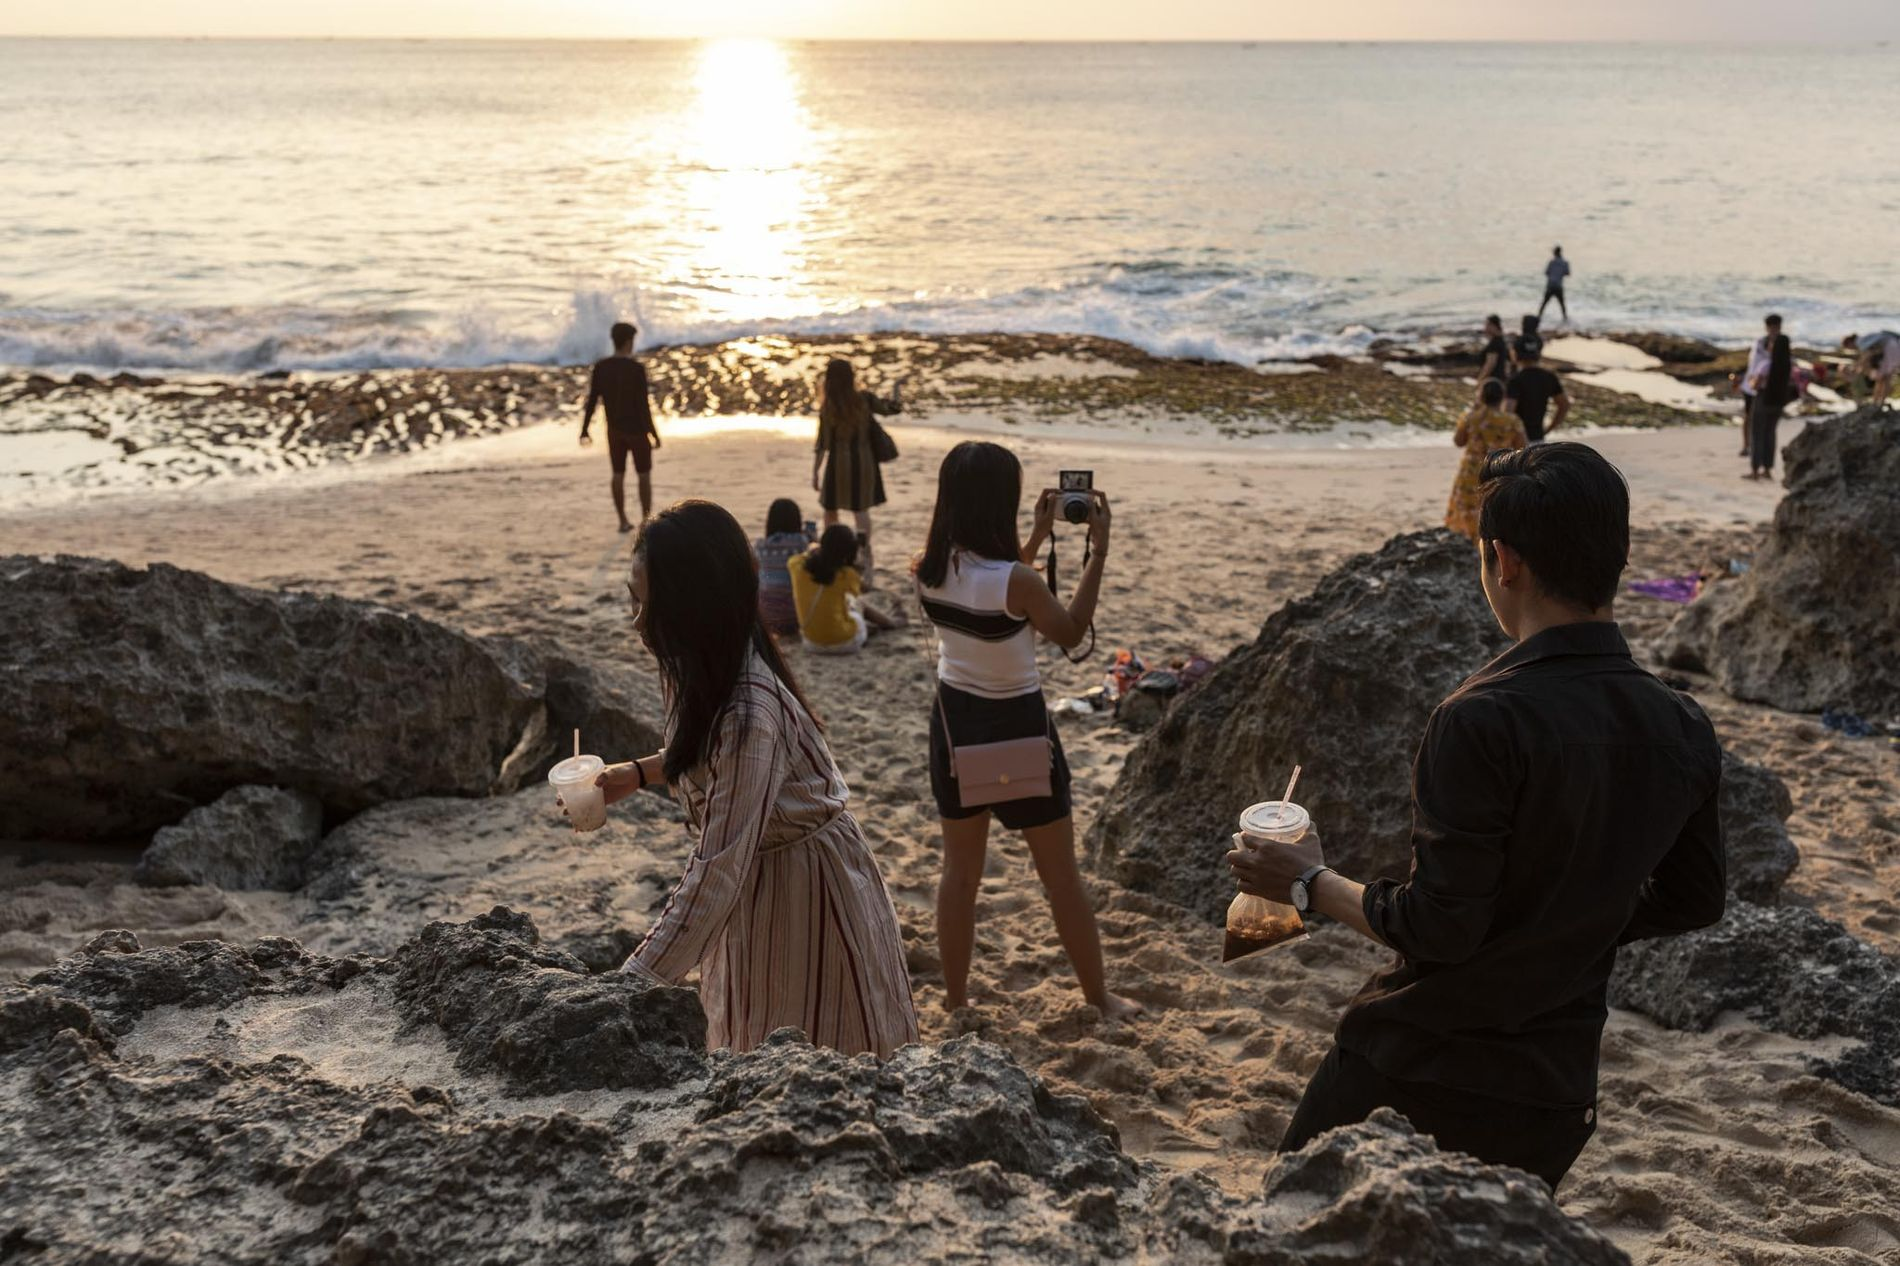 Visitors often bring snacks to Tegal Wangi beach to enjoy while watching the sunset, yet often ...